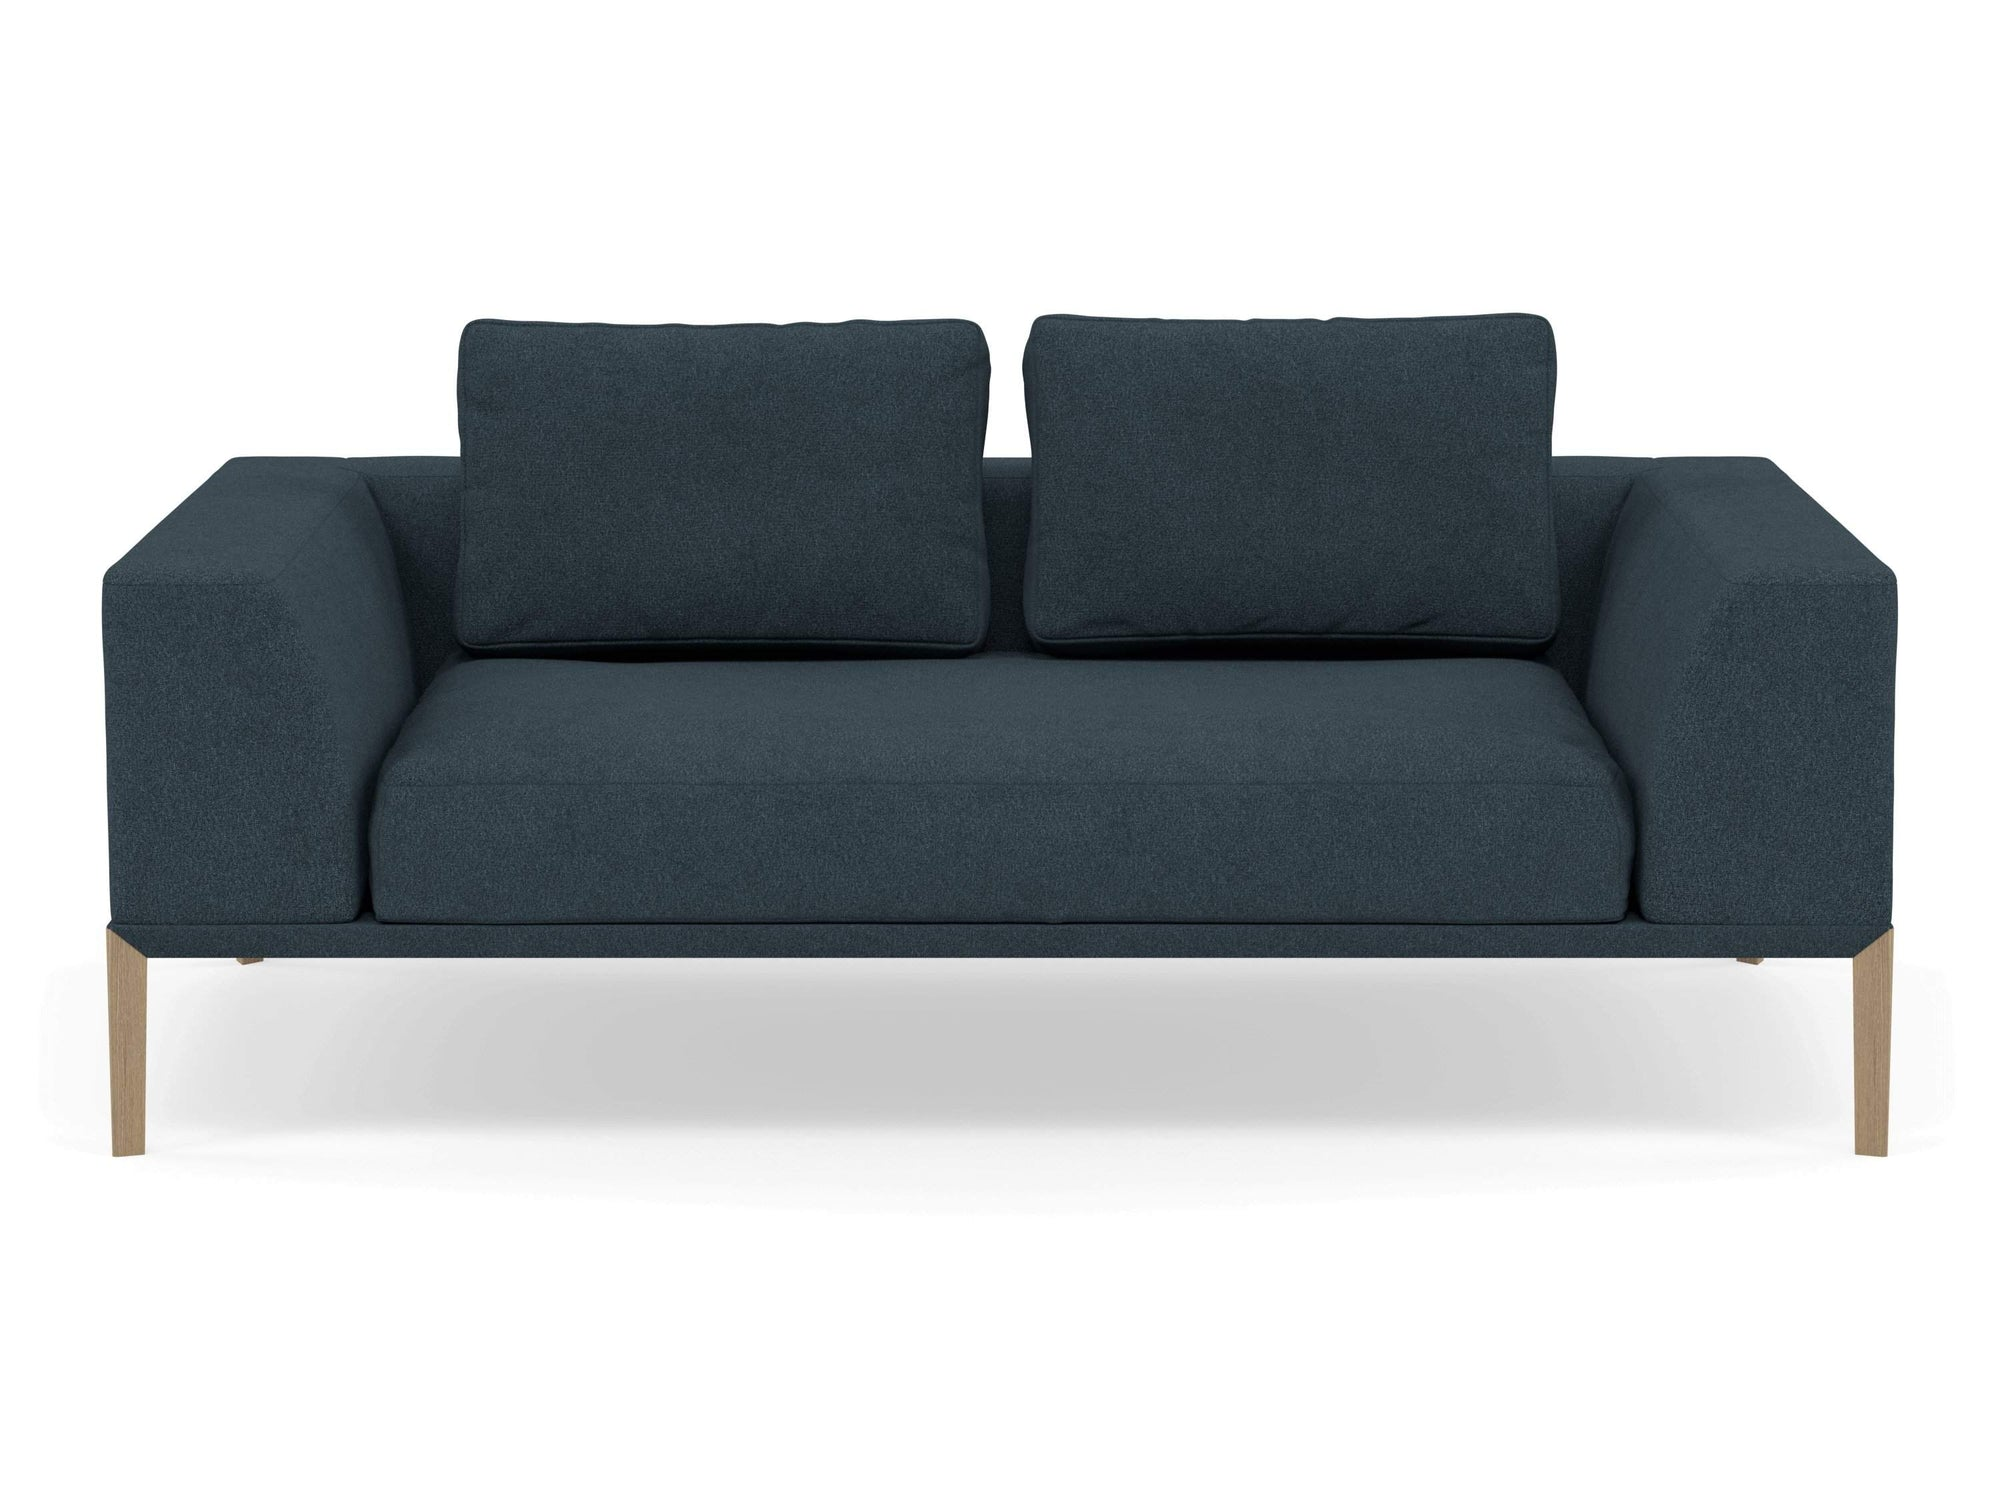 Modern 2 Seater Sofa with 2 Armrests in Denim Blue Fabric-Natural Oak-Distinct Designs (London) Ltd